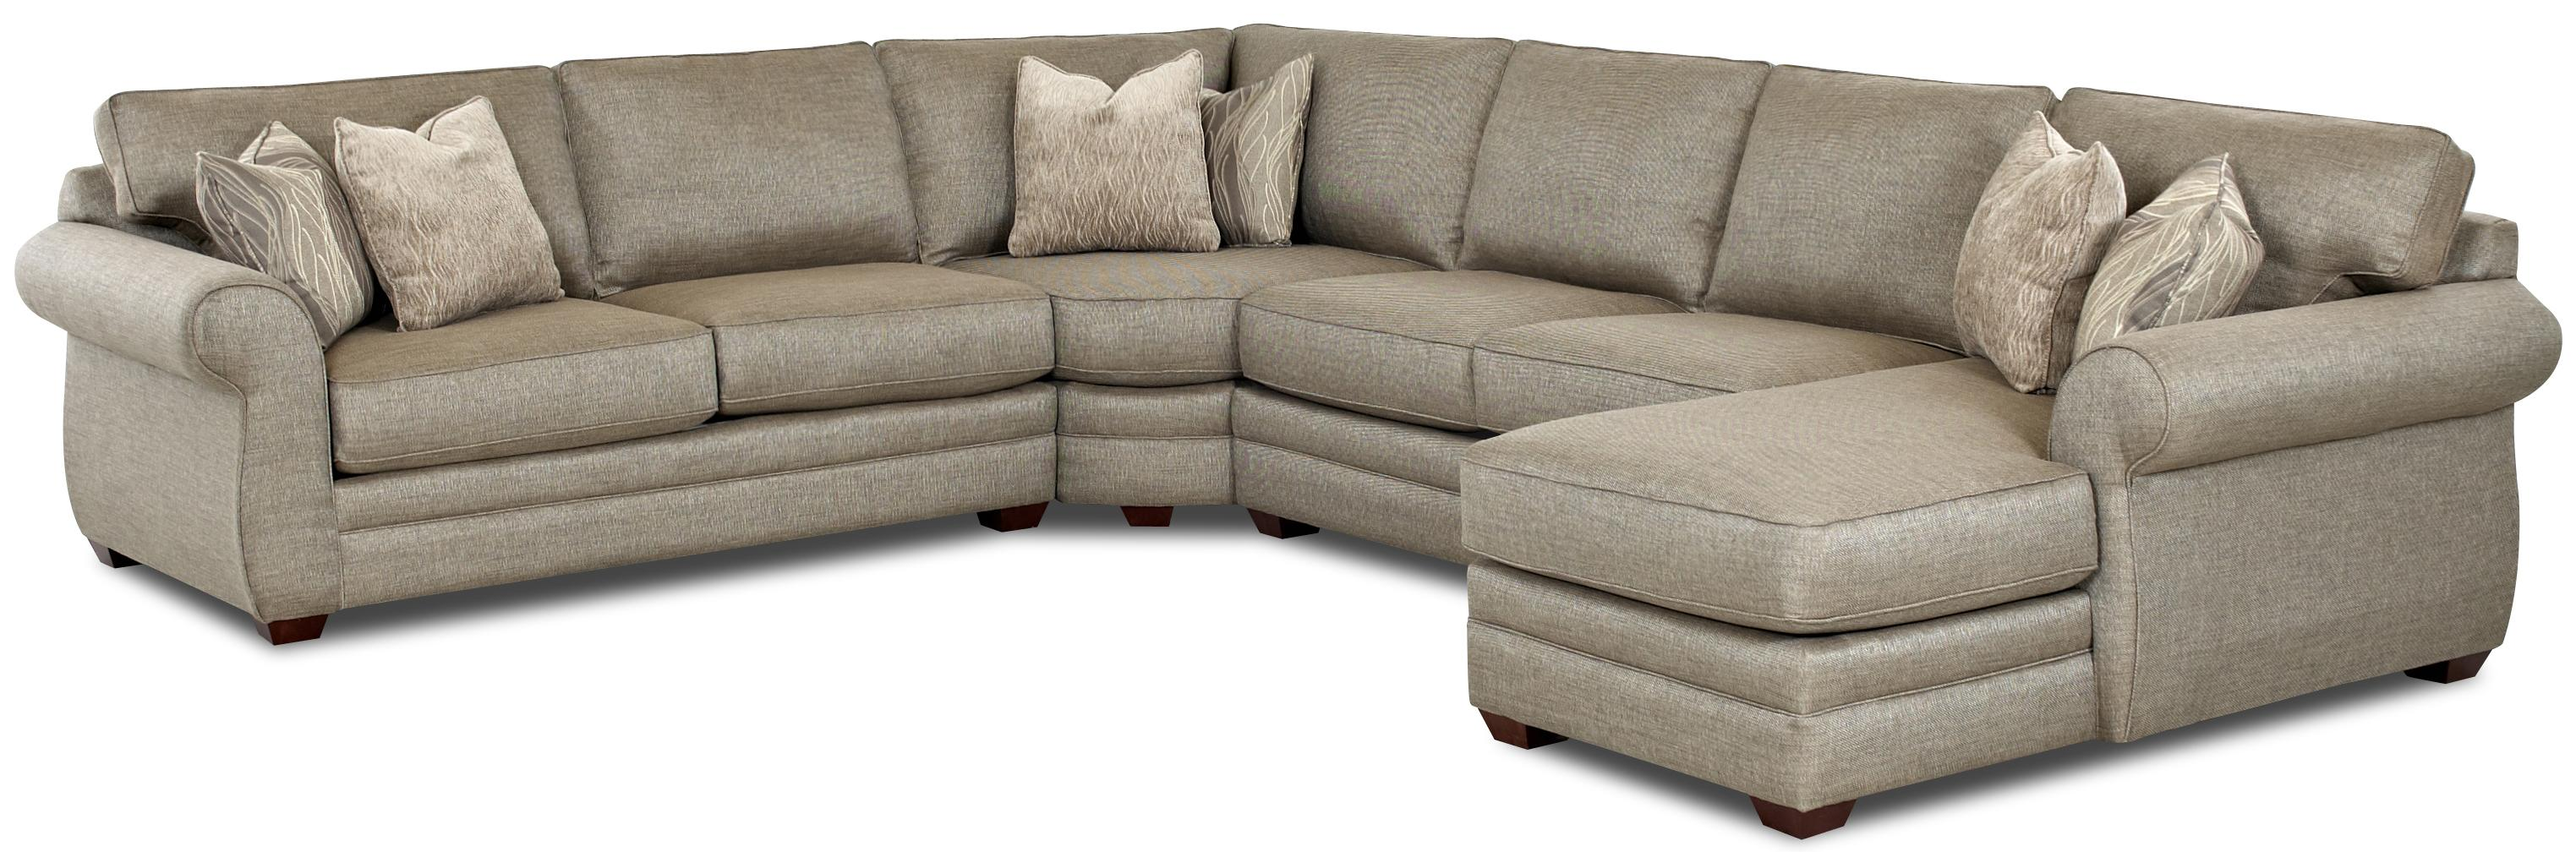 Klaussner Clanton Transitional Sectional Sofa With Right Chaise And Full Sleeper Olinde 39 S